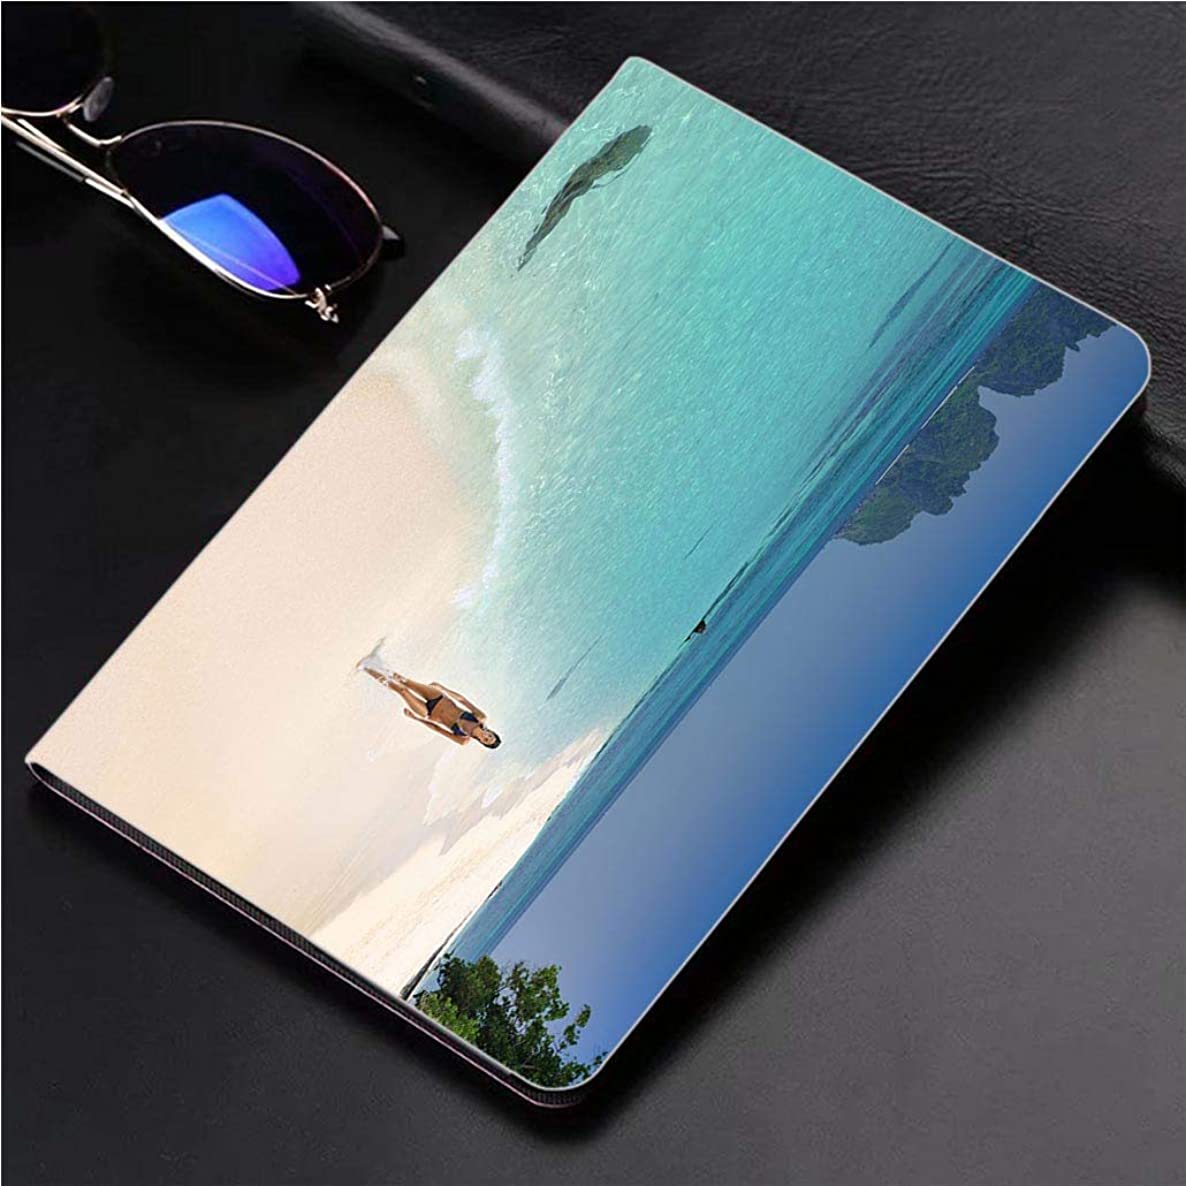 Compatible with 3D Printed iPad Pro 10.5 Case Woman Walking Down The Beach on a secluded Island 360 Degree Swivel Mount Cover for Automatic Sleep Wake up ipad case